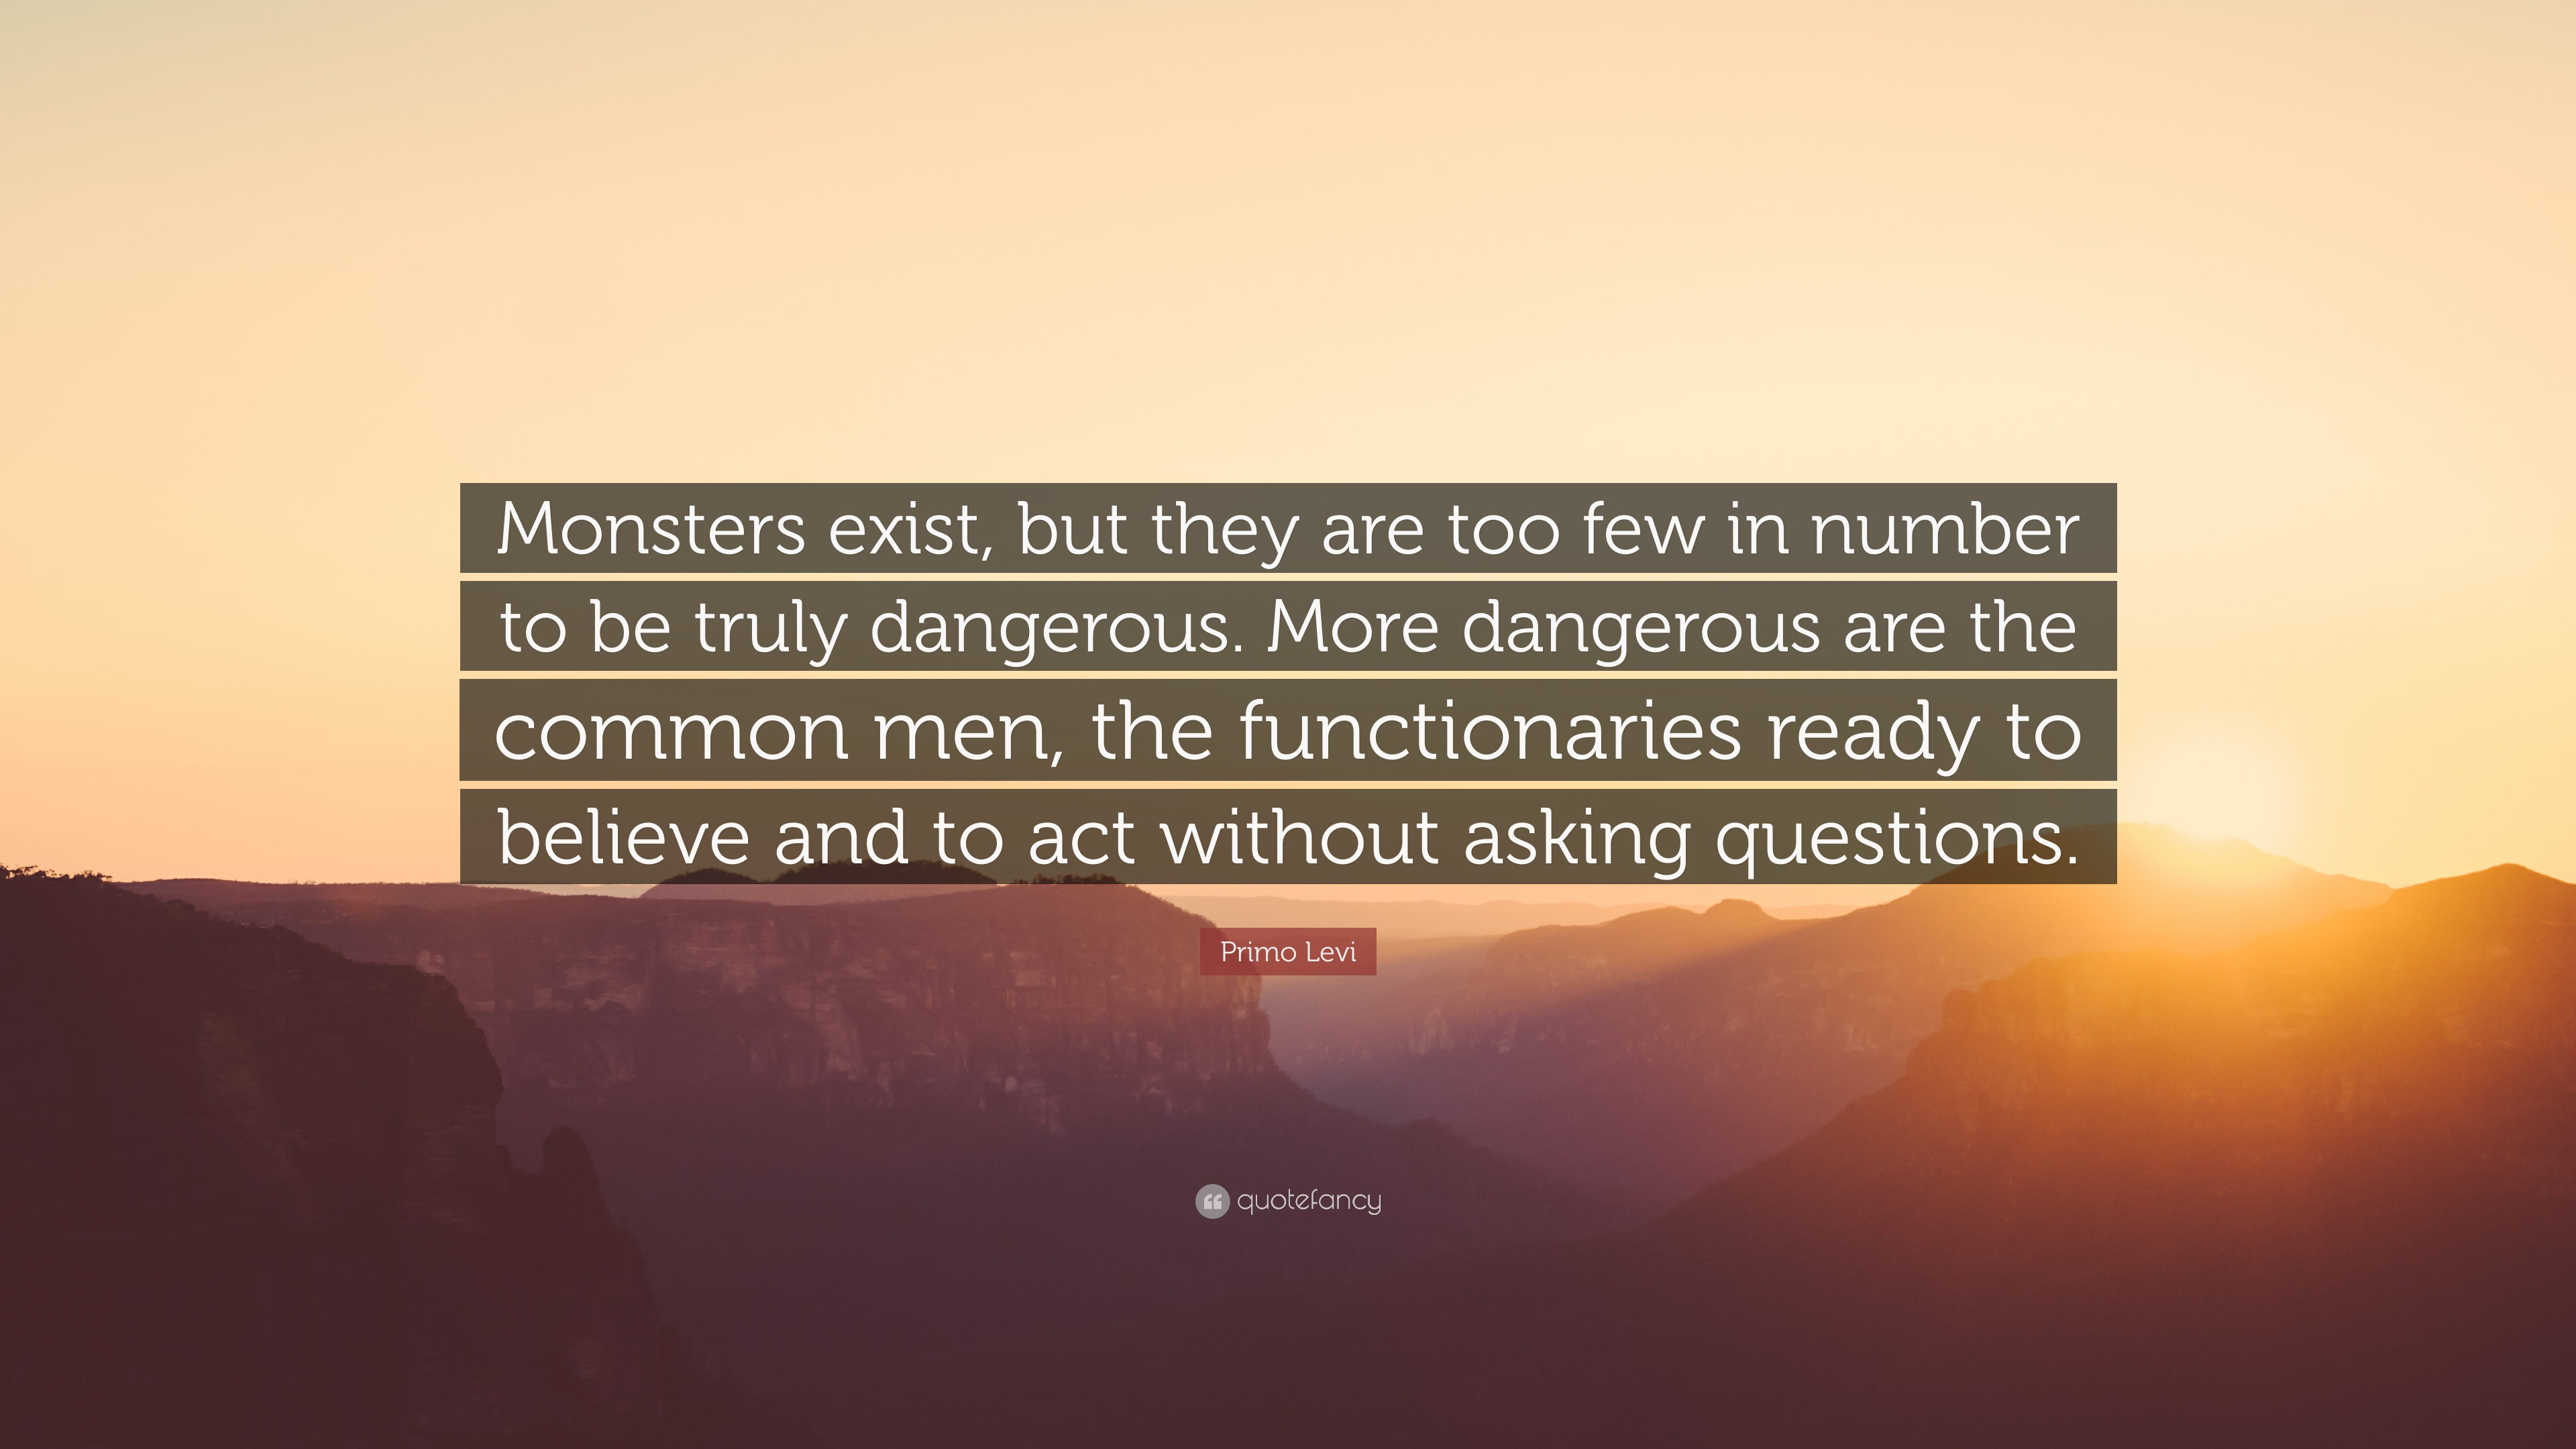 Primo levi quotes 44 wallpapers quotefancy primo levi quote monsters exist but they are too few in number to gamestrikefo Choice Image